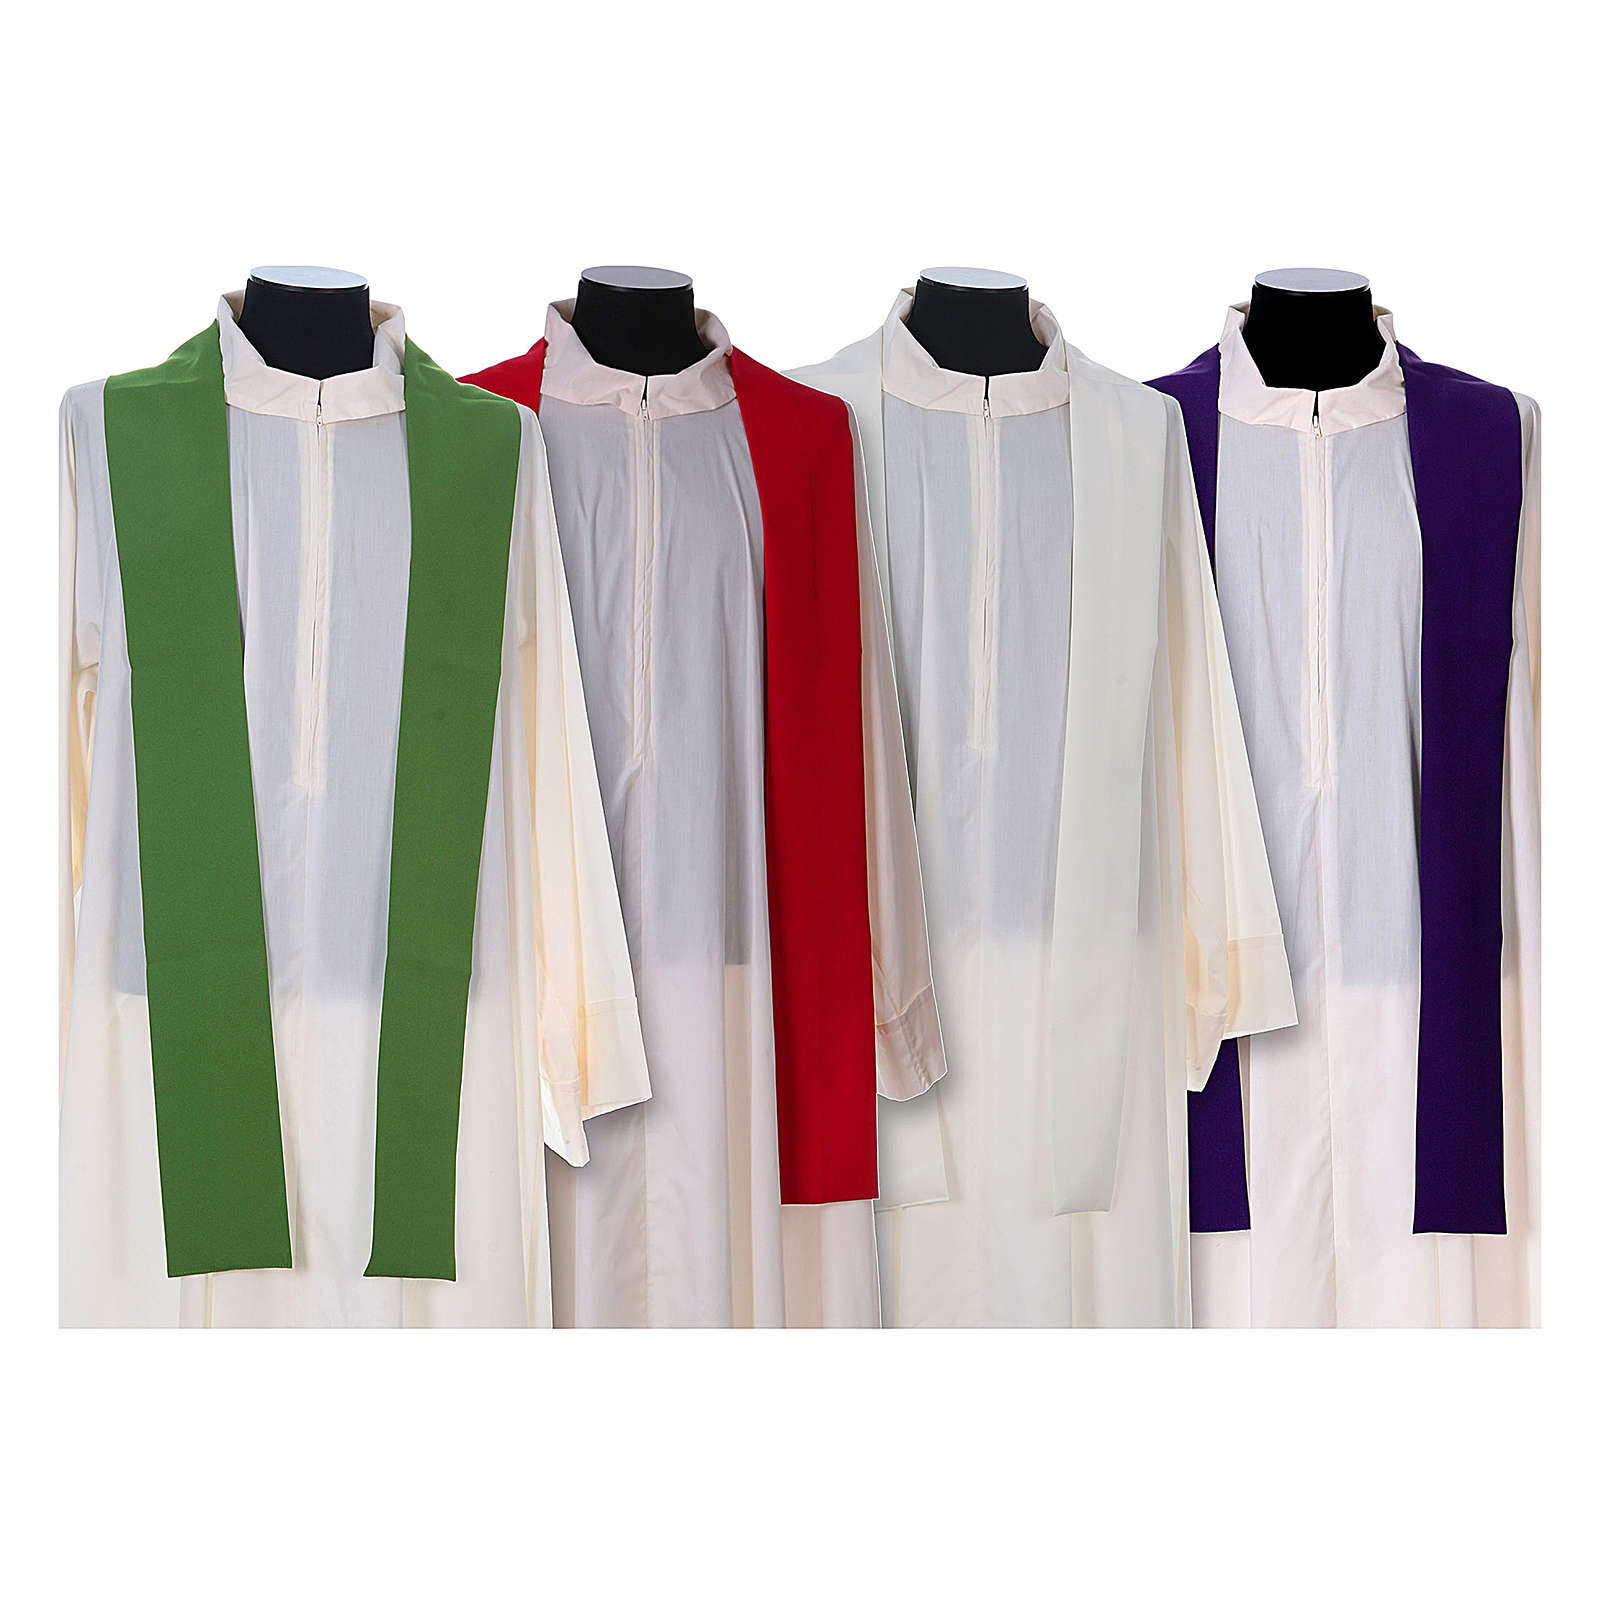 Gothic Chasuble with cross, lantern and wheat symbol in polyester 4